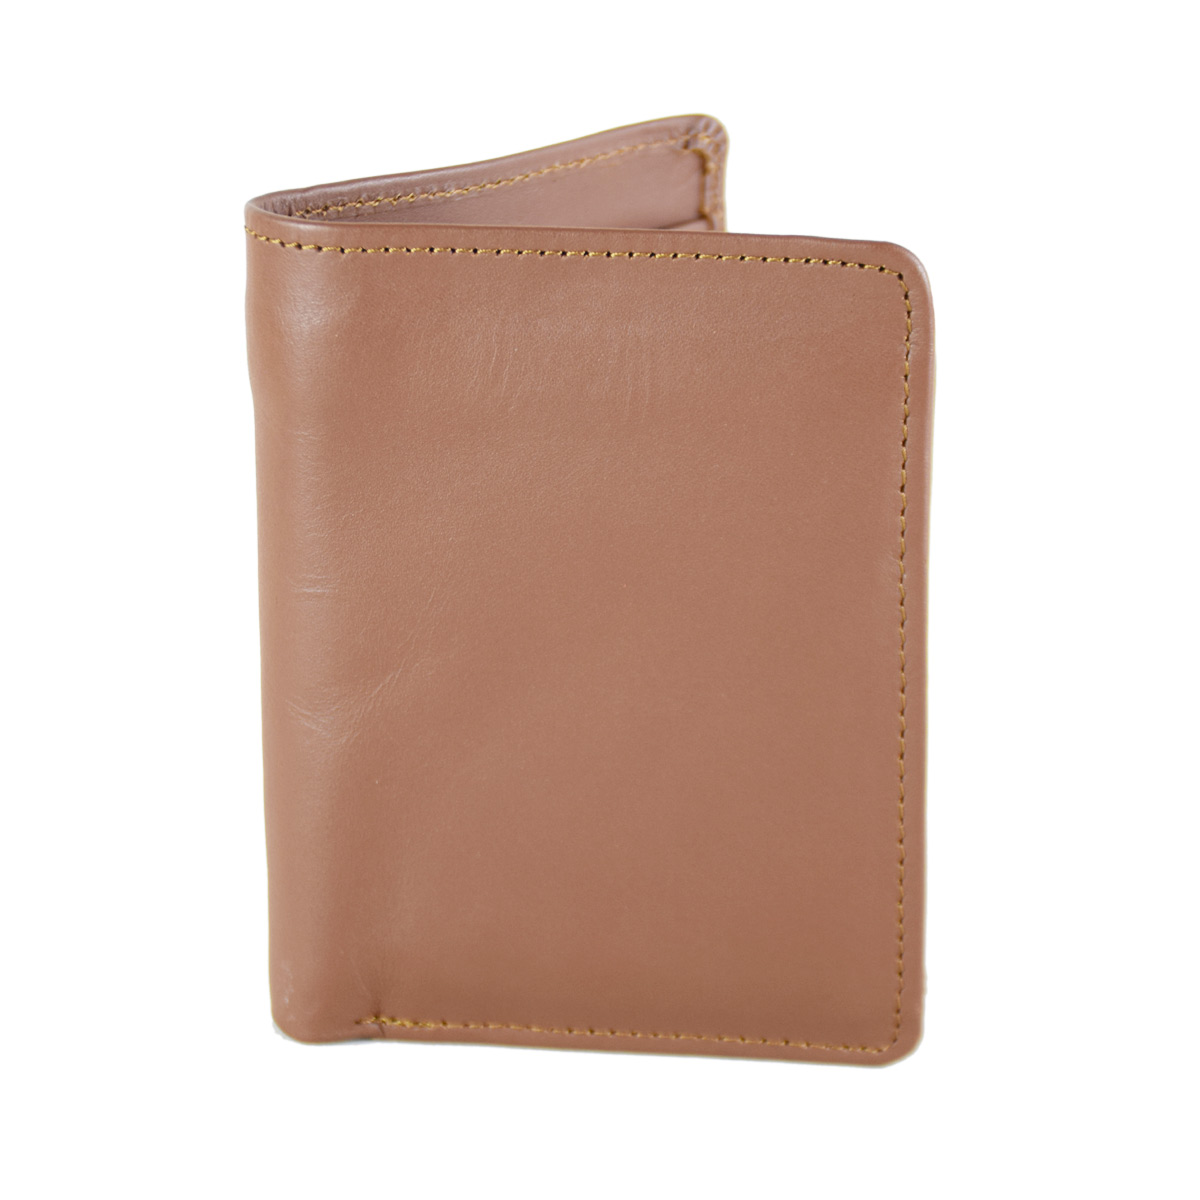 BROWN WALLET WITH ATTACHED CREDIT CARD HOLDER